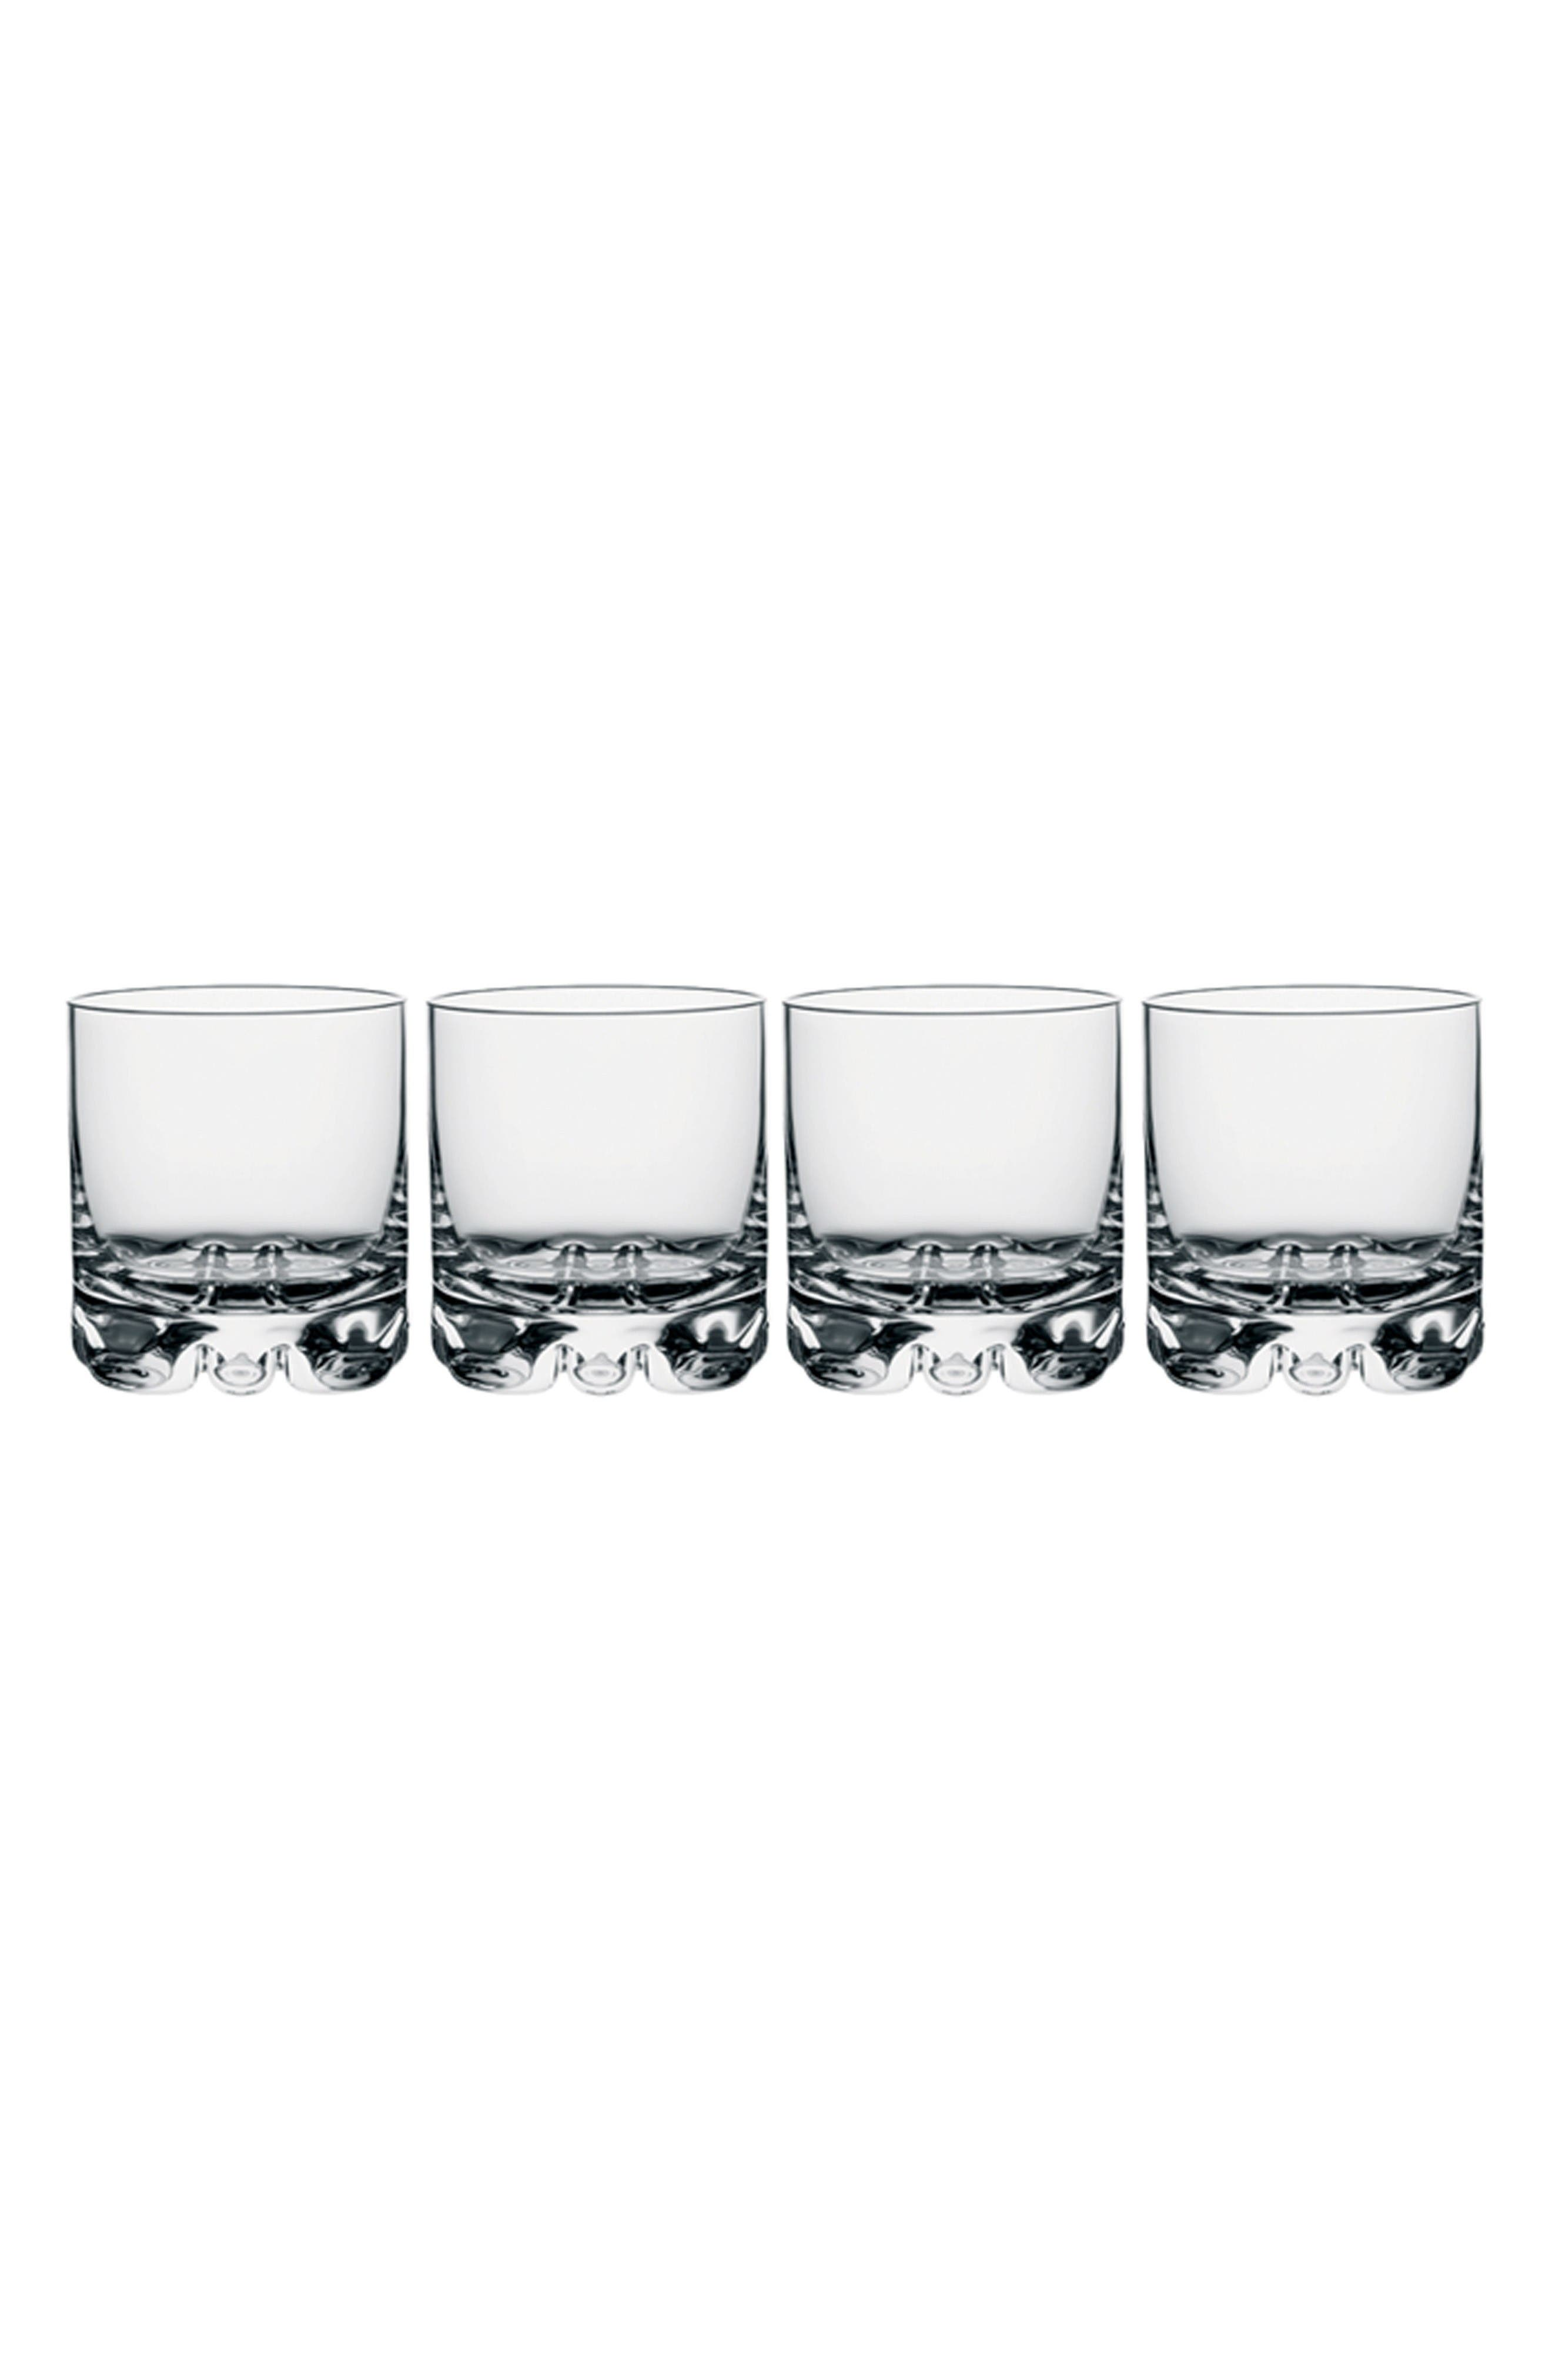 Main Image - Orrefors Erik Set of 4 Double Old Fashioned Glasses